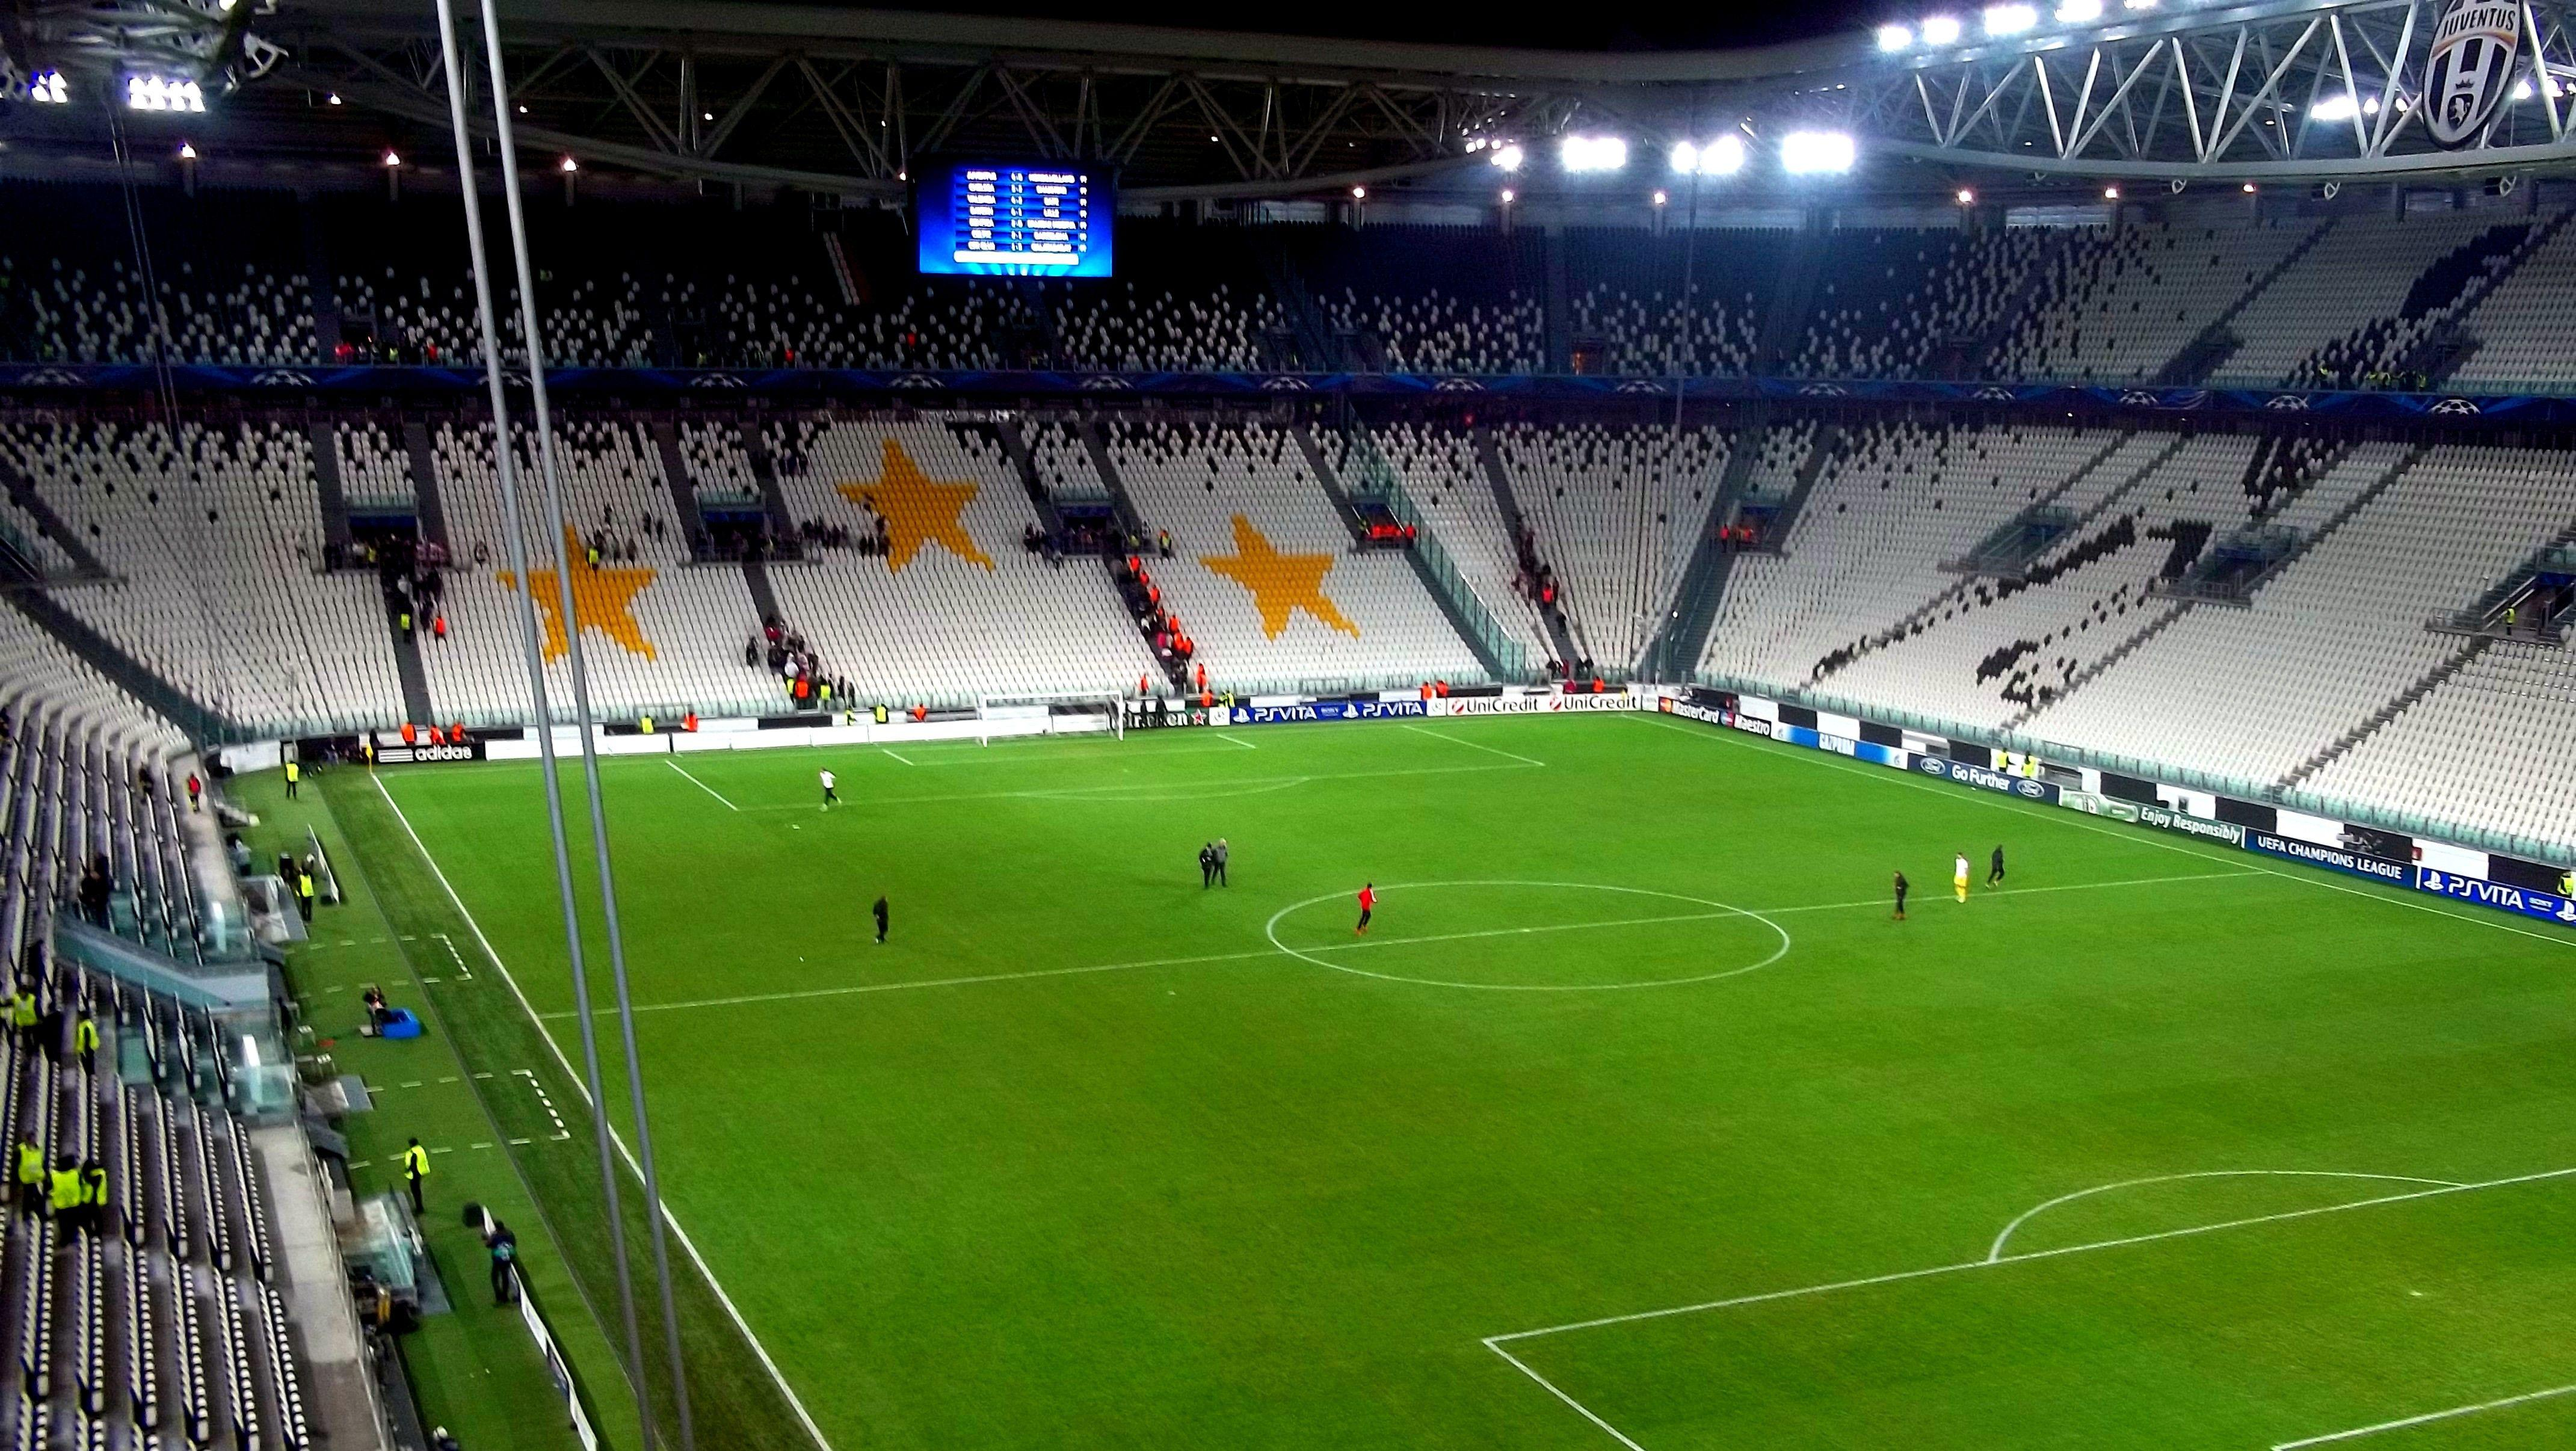 soccer, arena, stadium, Champions League, Juventus, Turin :: Wallpapers